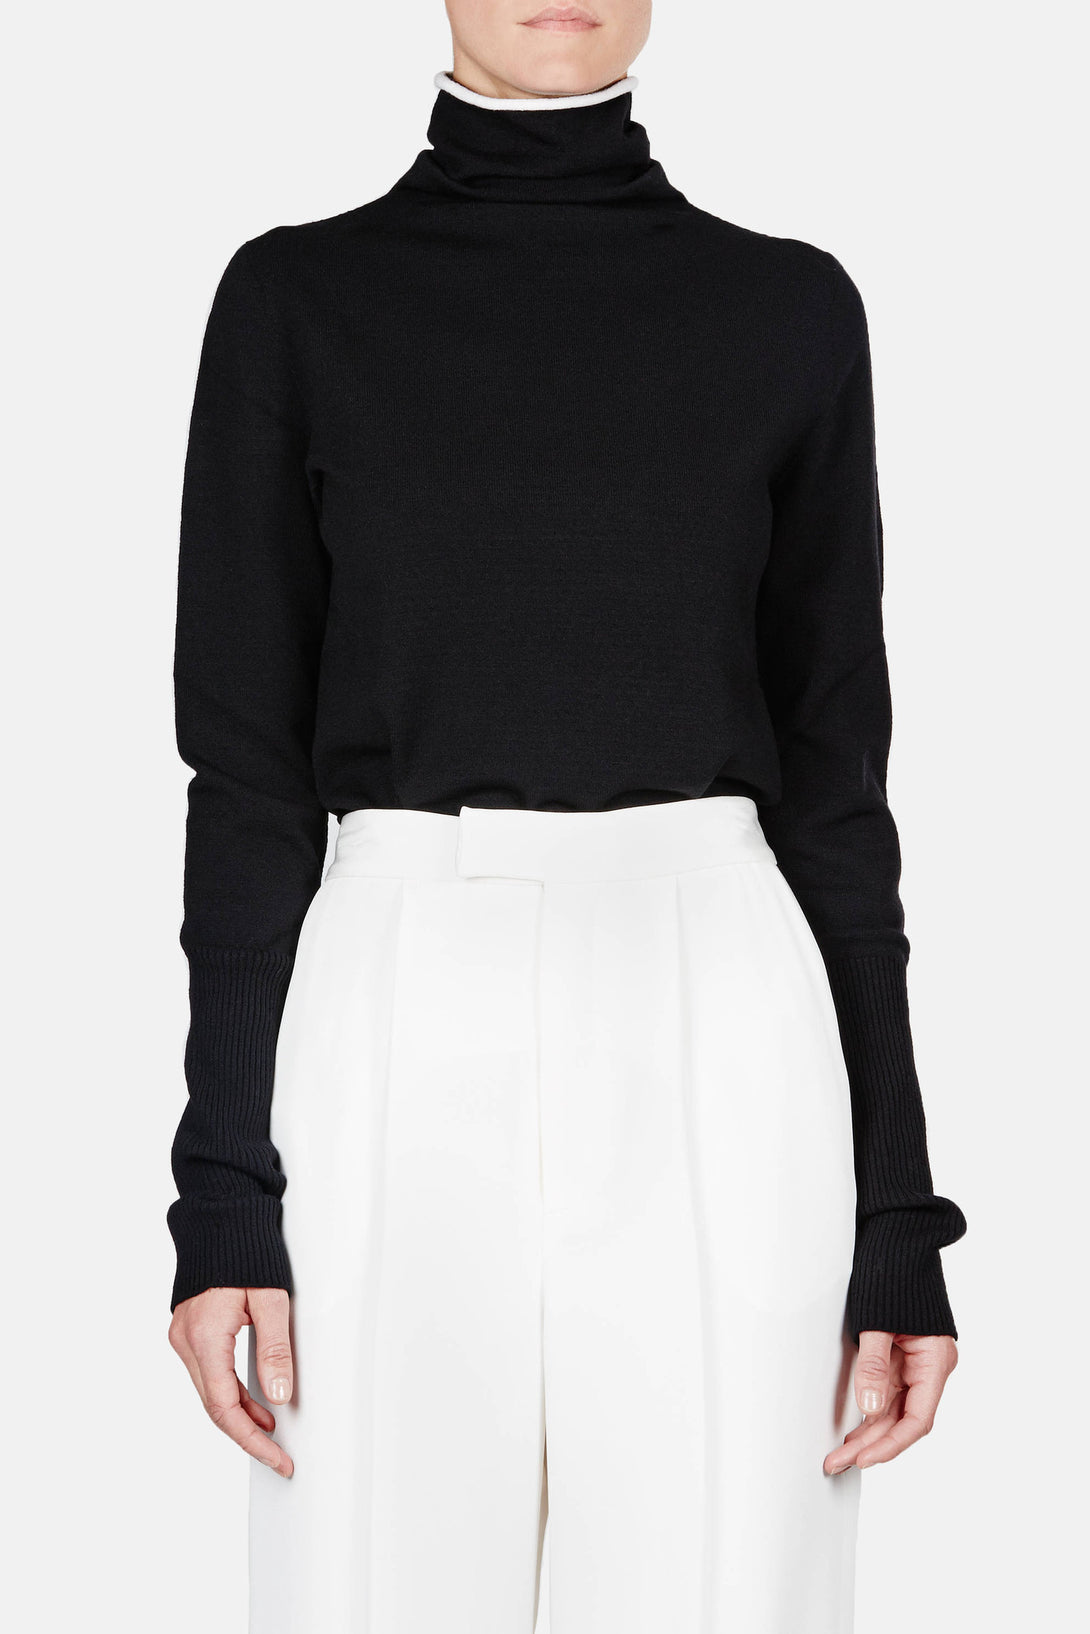 Sweater 01 Line Turtleneck - Black